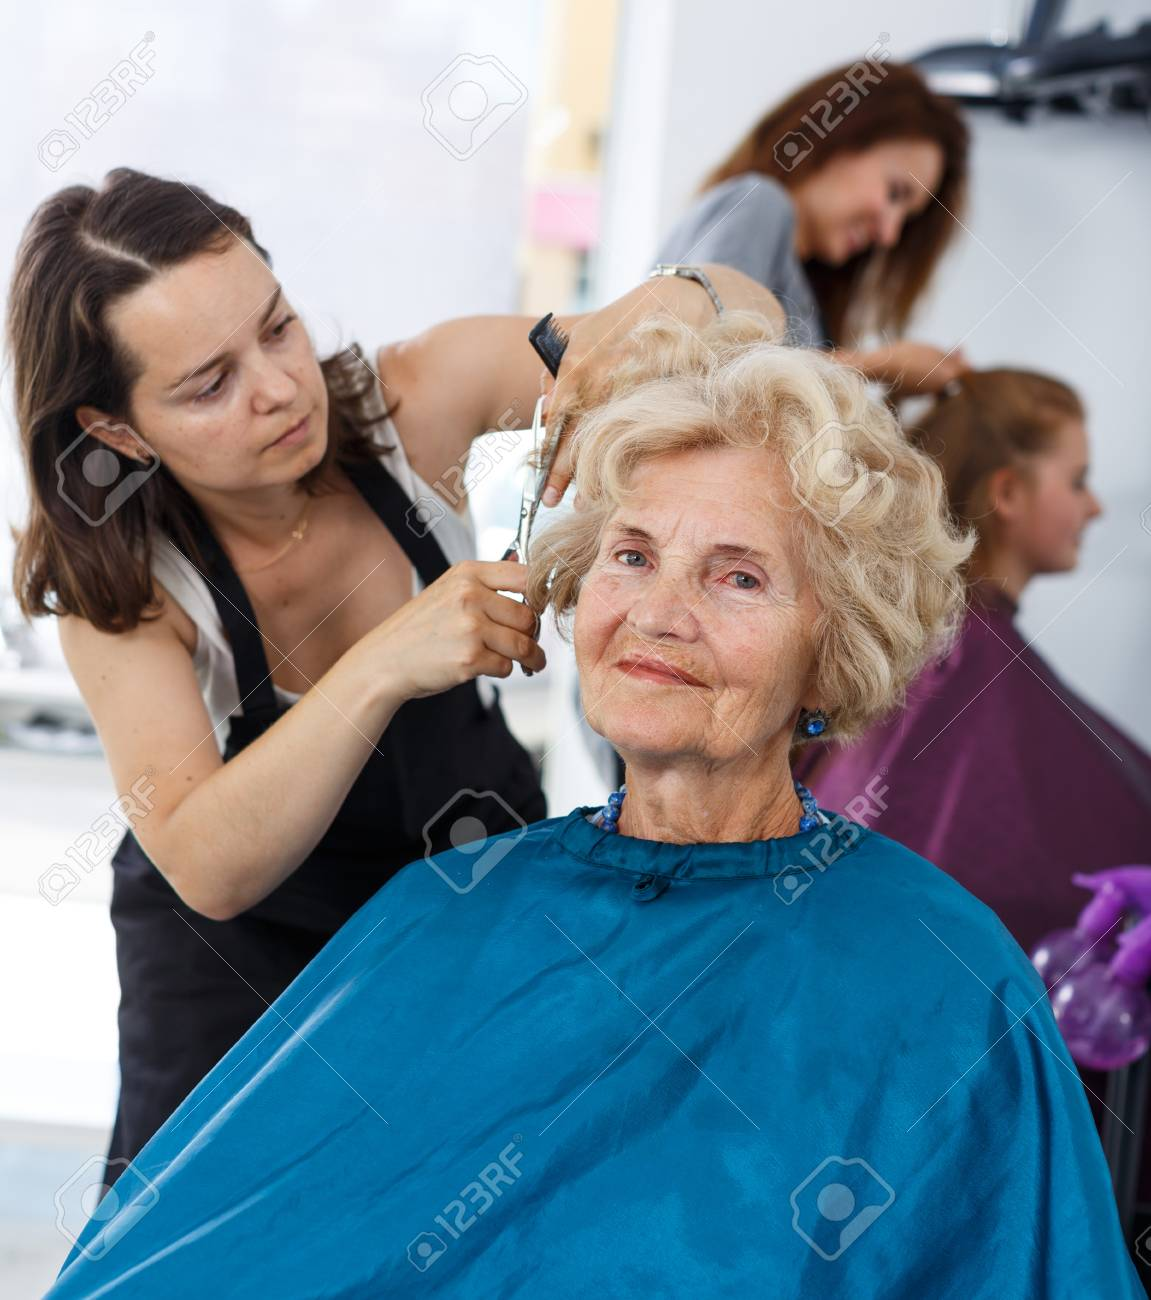 Salon Senior Senior Lady Getting Haircutting By Professional Woman Hairdresser